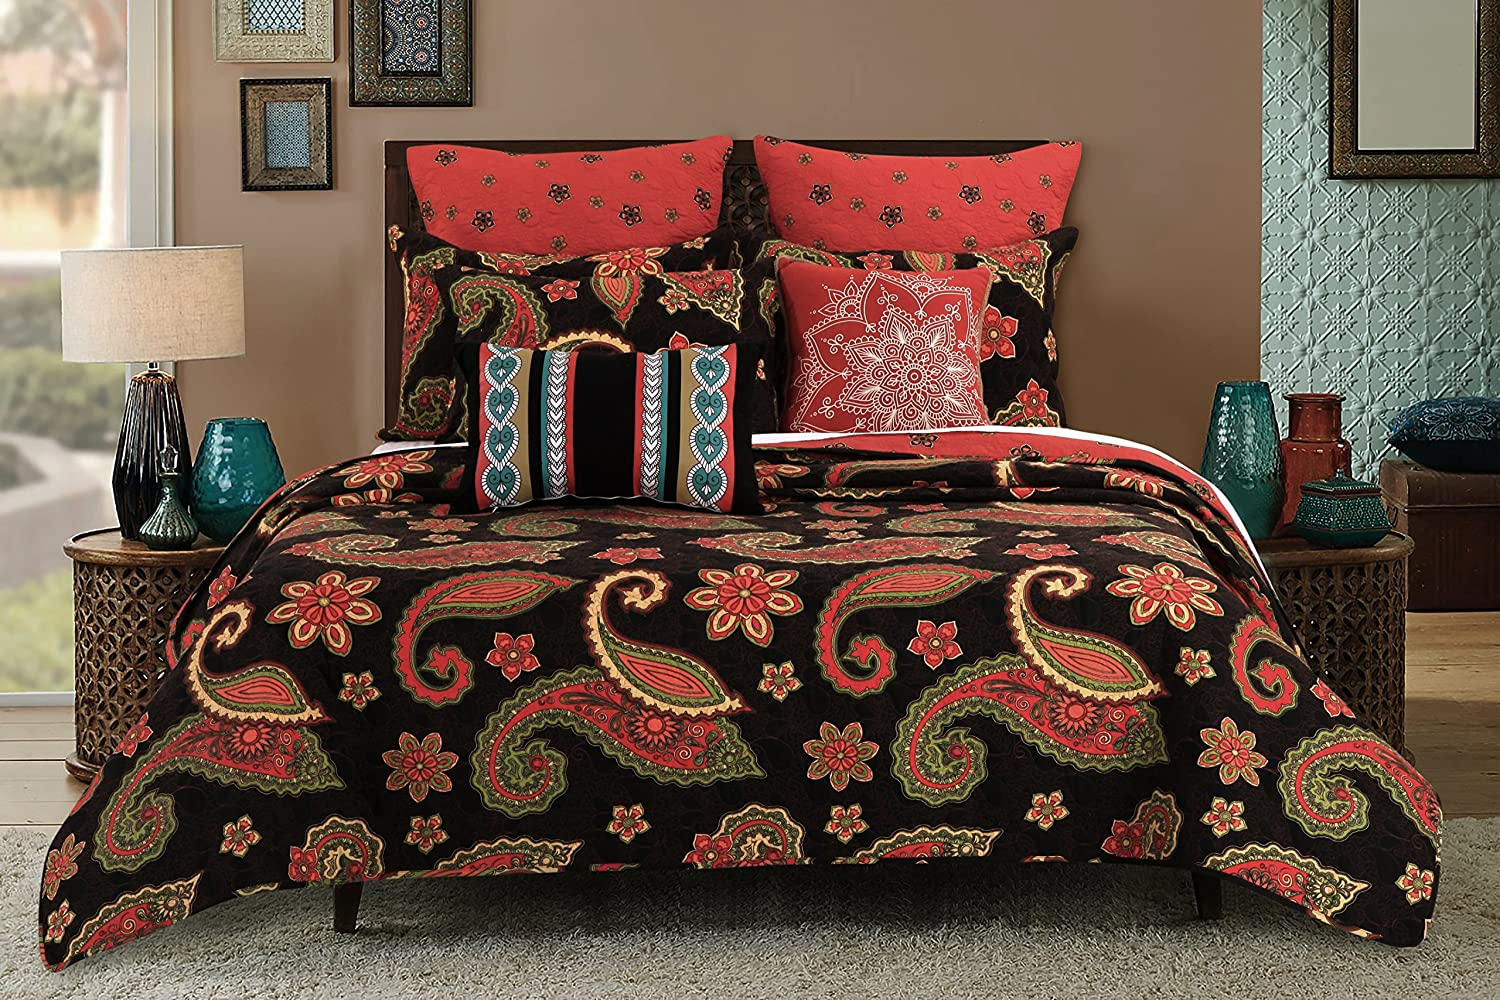 GL-1604AMSK 3-Piece Midnight Paisley Multi Colored King Size Quilt Set